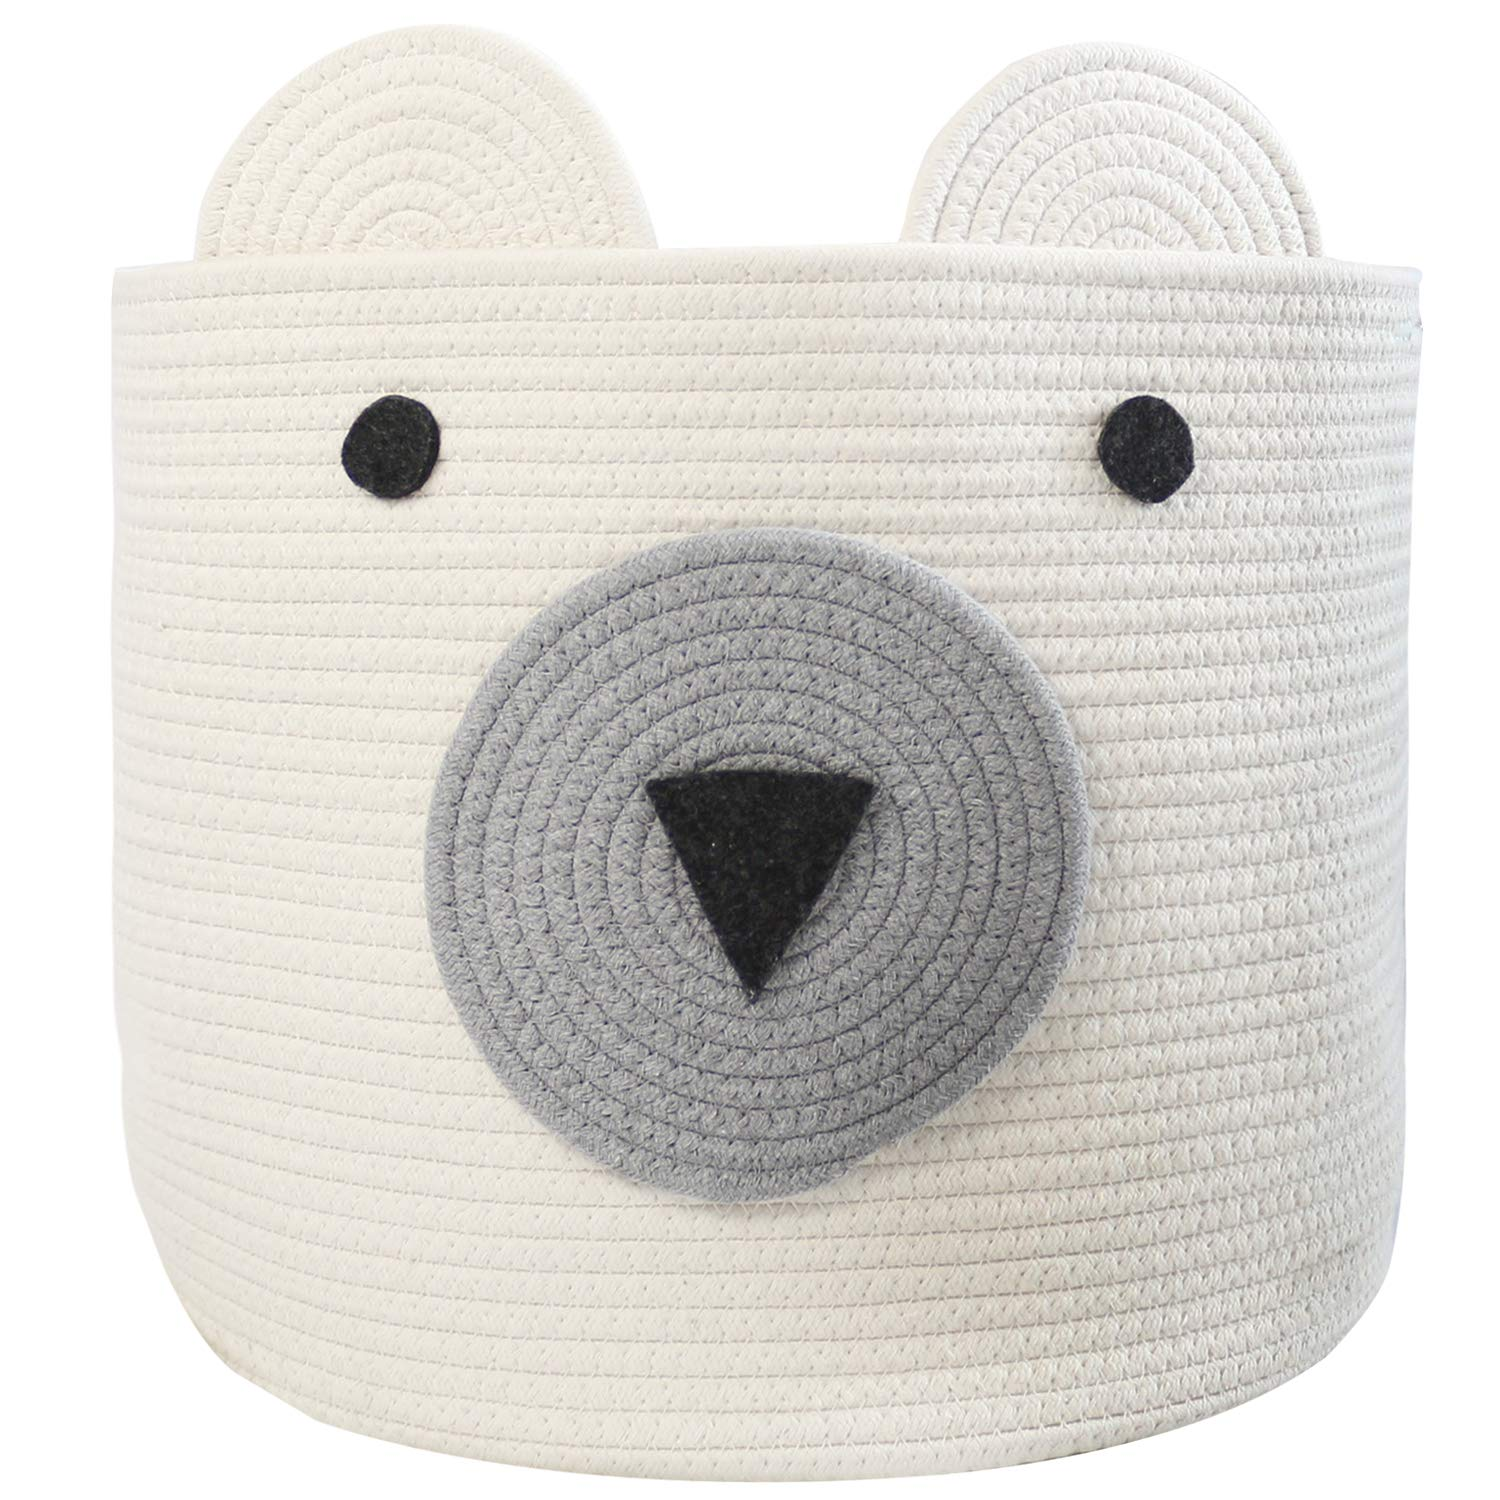 COMEMORY Cotton Rope Storage Basket with Cute Bear Design Foldable Woven Laundry Basket with Large Capacity Decorative Basket Organizer for Toys, Blanket, Towels, Clothes, 16''(D) x 14''(H) by comemory